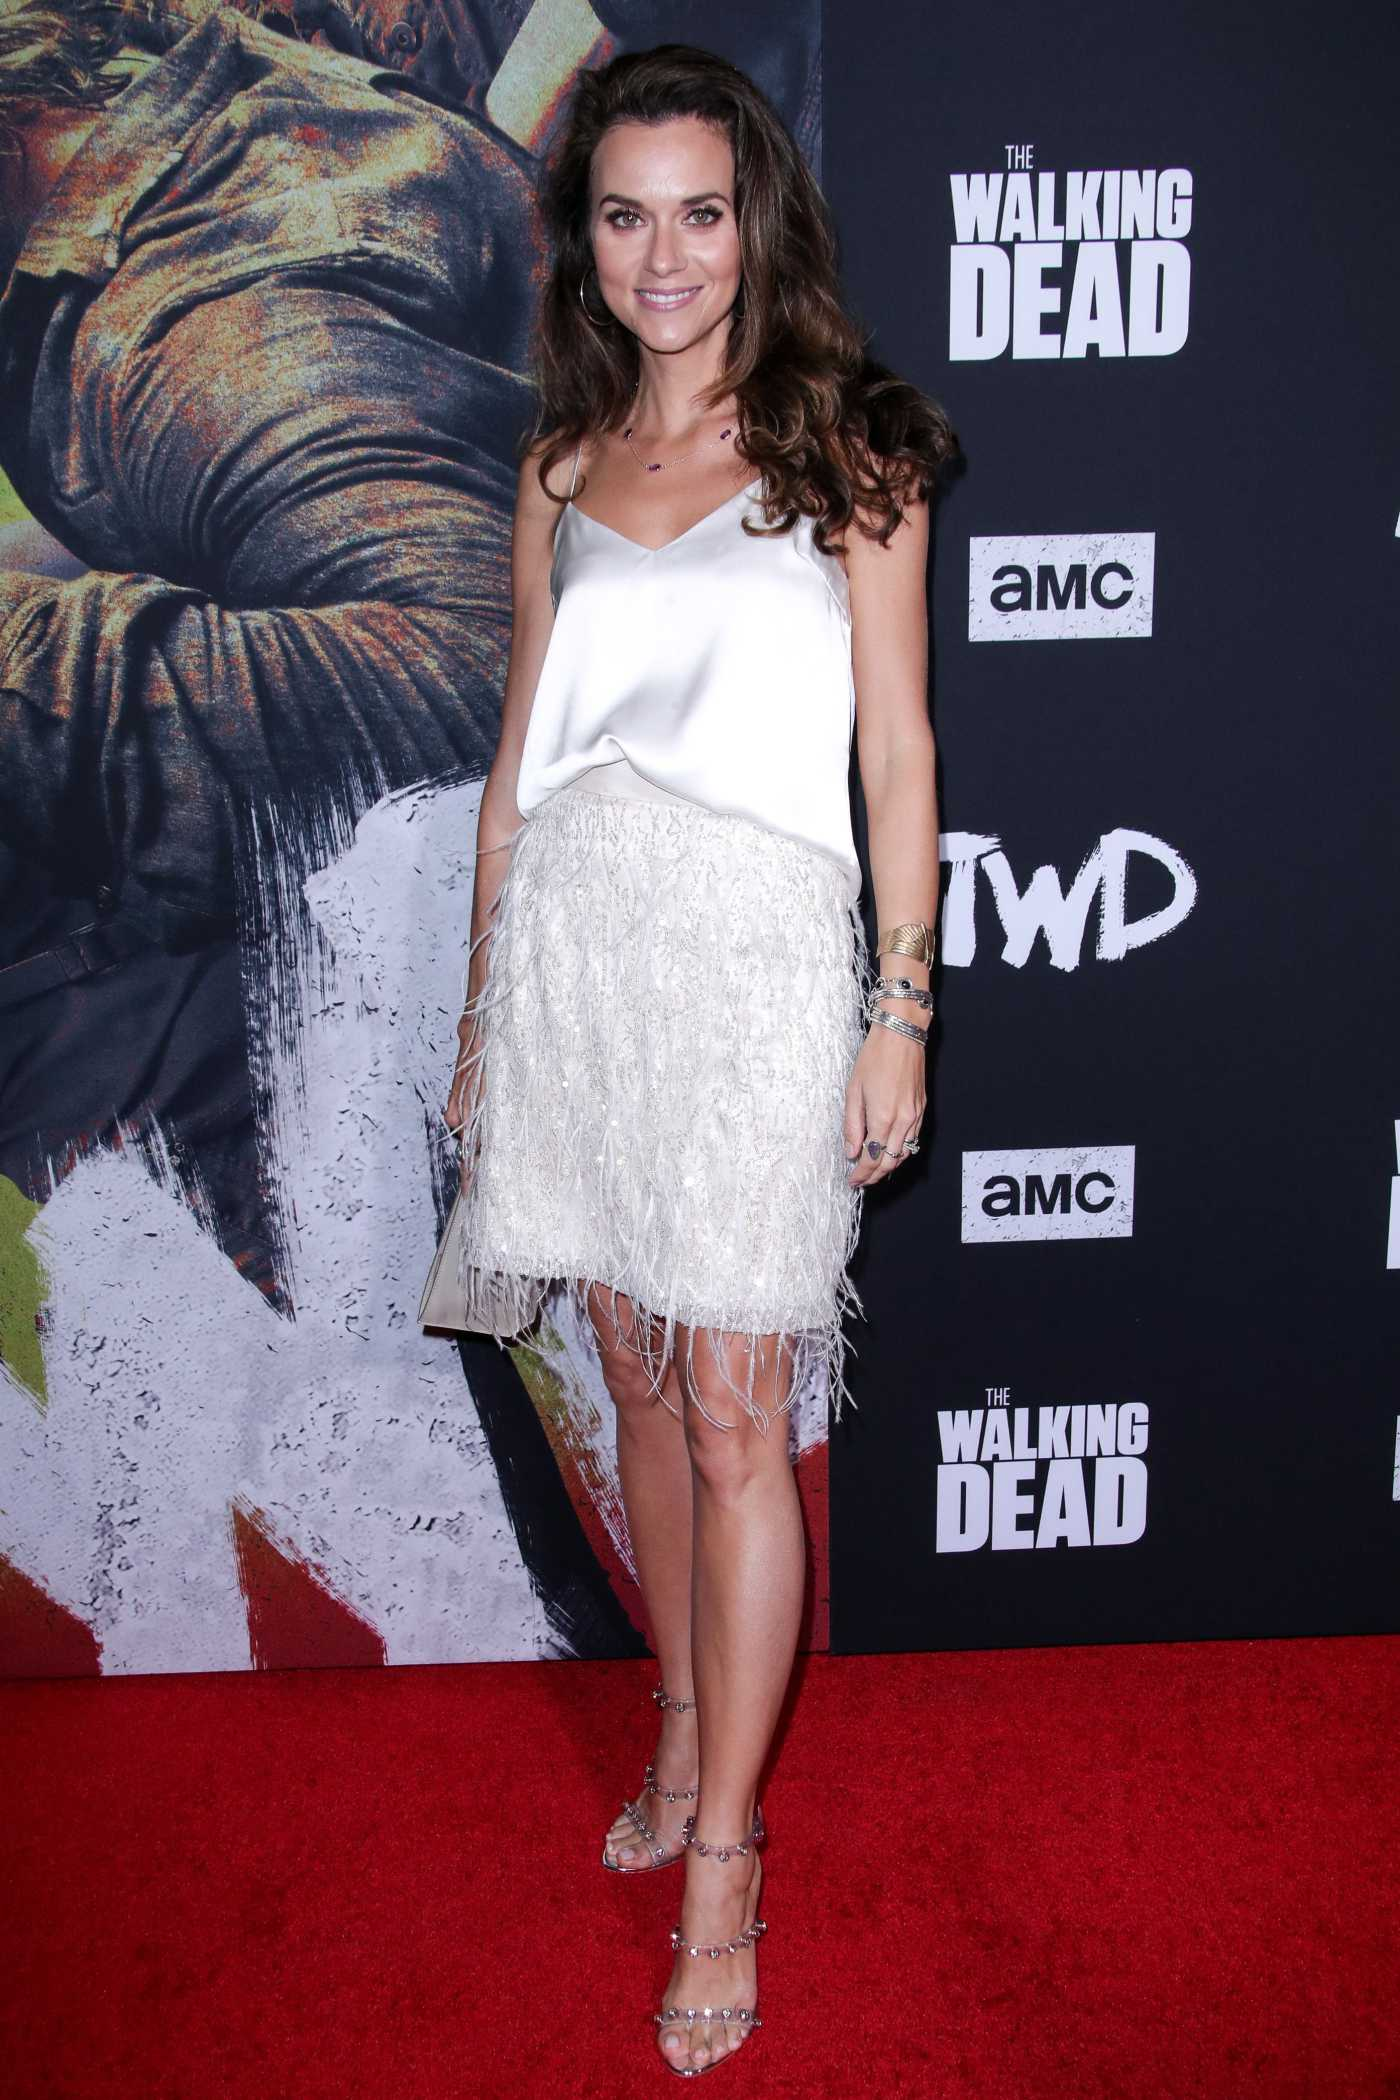 Hilarie Burton Attends The Walking Dead Premiere and Party at Chinese 6 Theater in Hollywood 09/23/2019